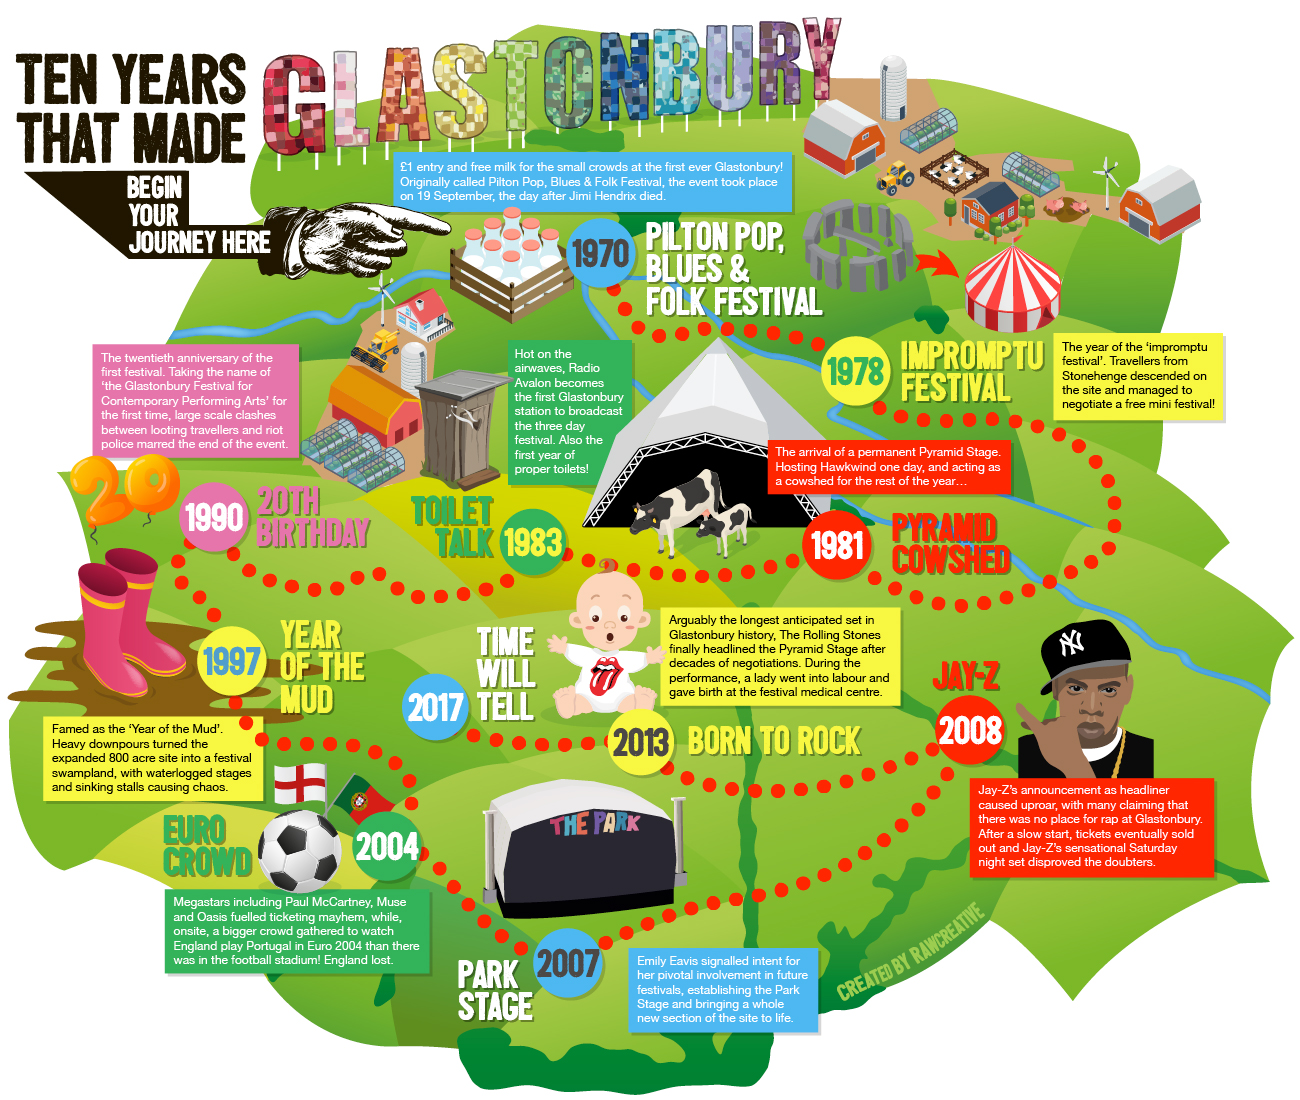 10 YEARS THAT MADE GLASTONBURY